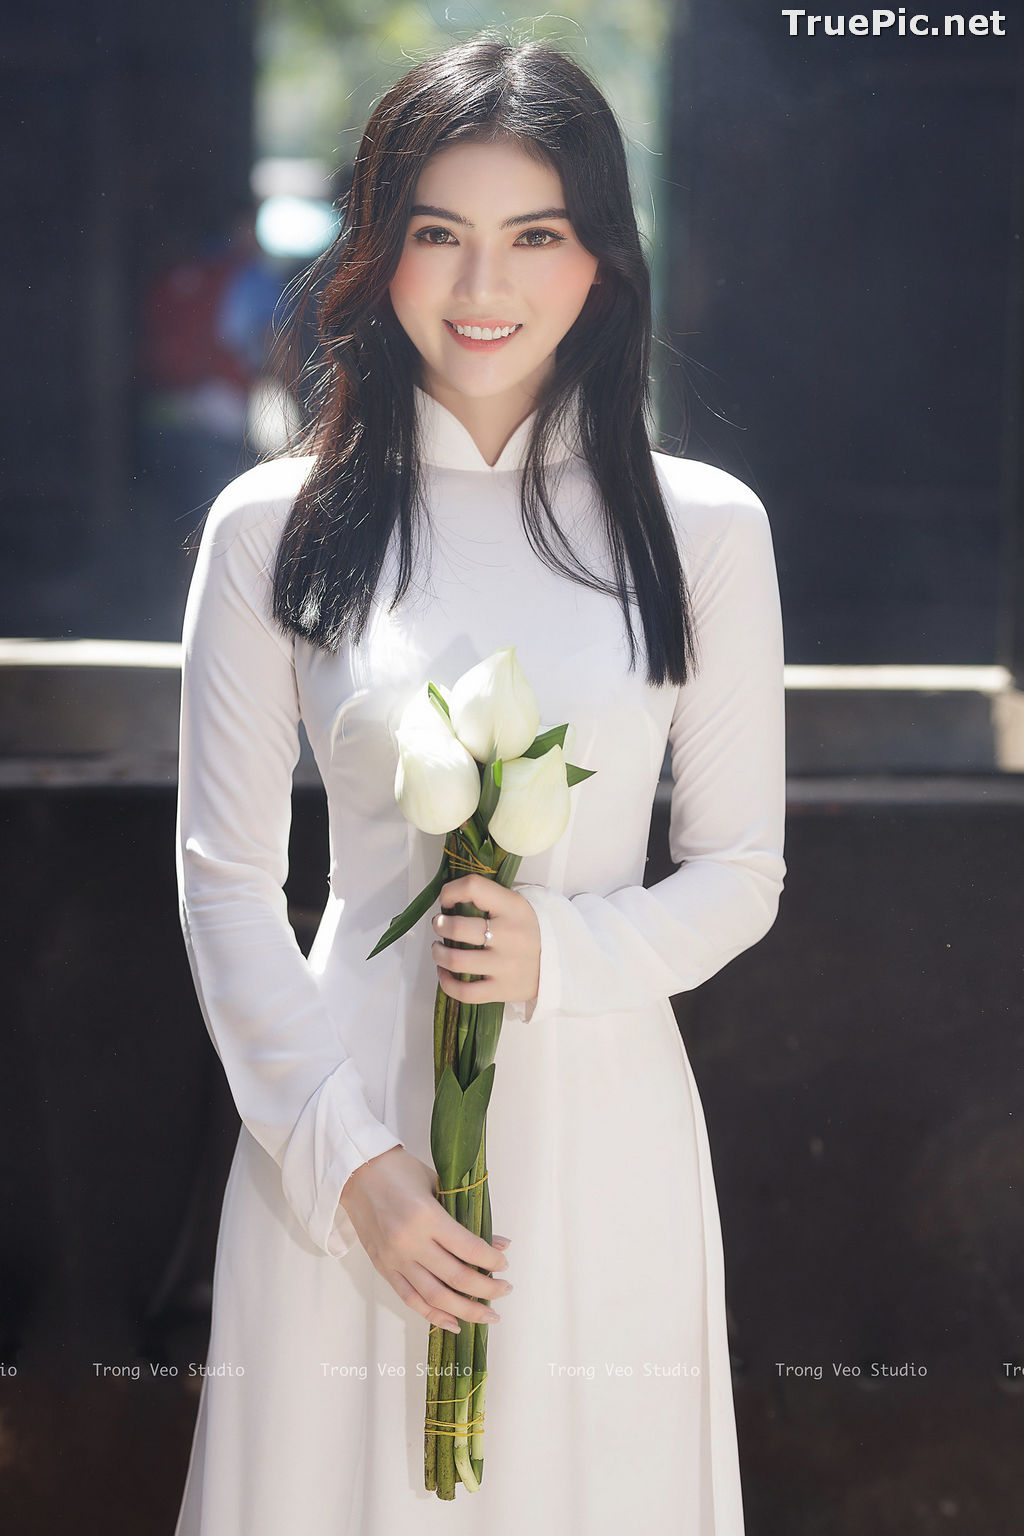 Image The Beauty of Vietnamese Girls with Traditional Dress (Ao Dai) #4 - TruePic.net - Picture-1